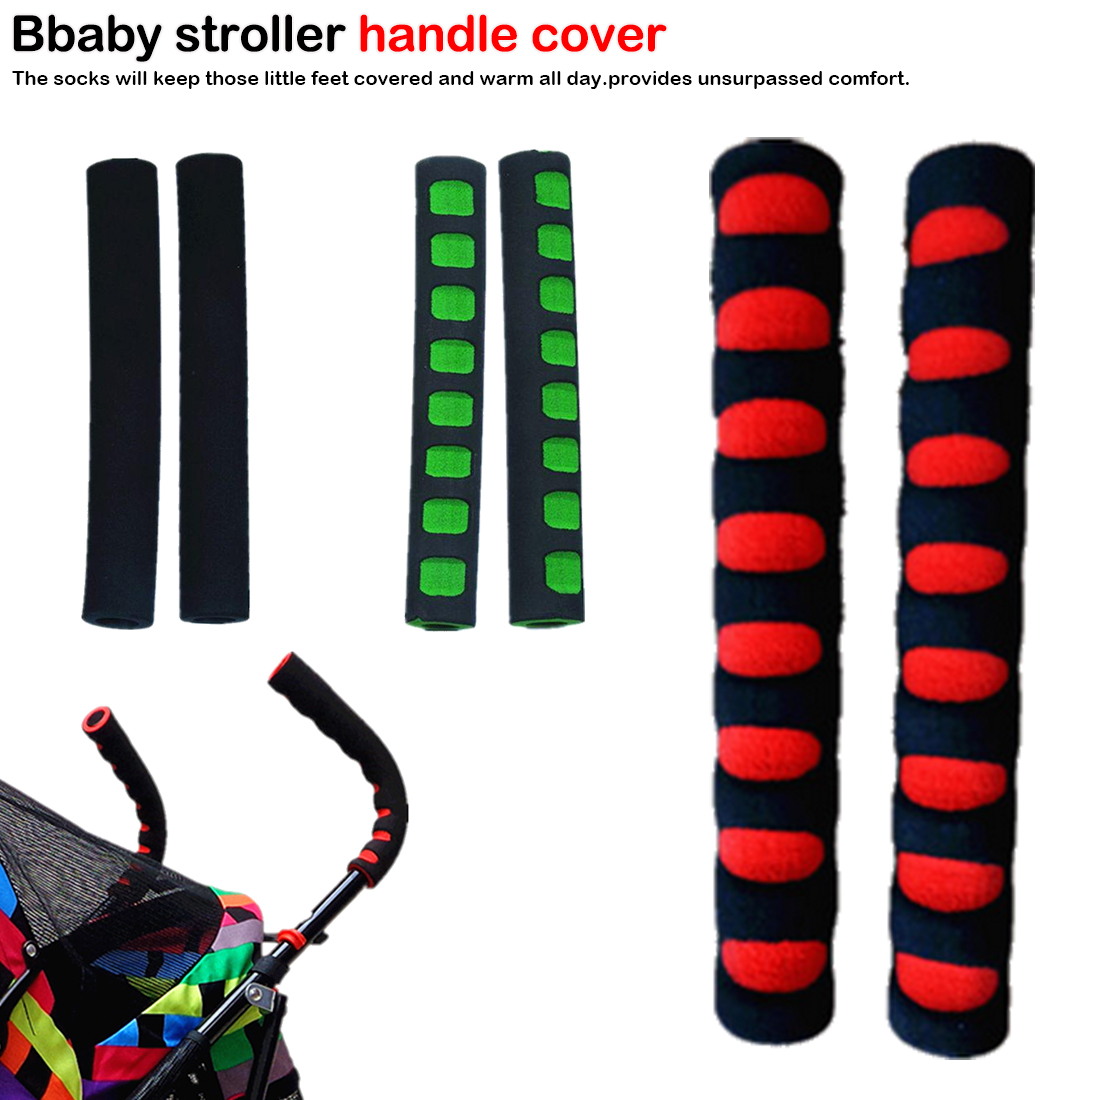 2pcs/set Baby Stroller Handle Cover Push Tube Cart Sleeve EVA Foam Covers Armrest Soft Protector Grips Accessories High Quality